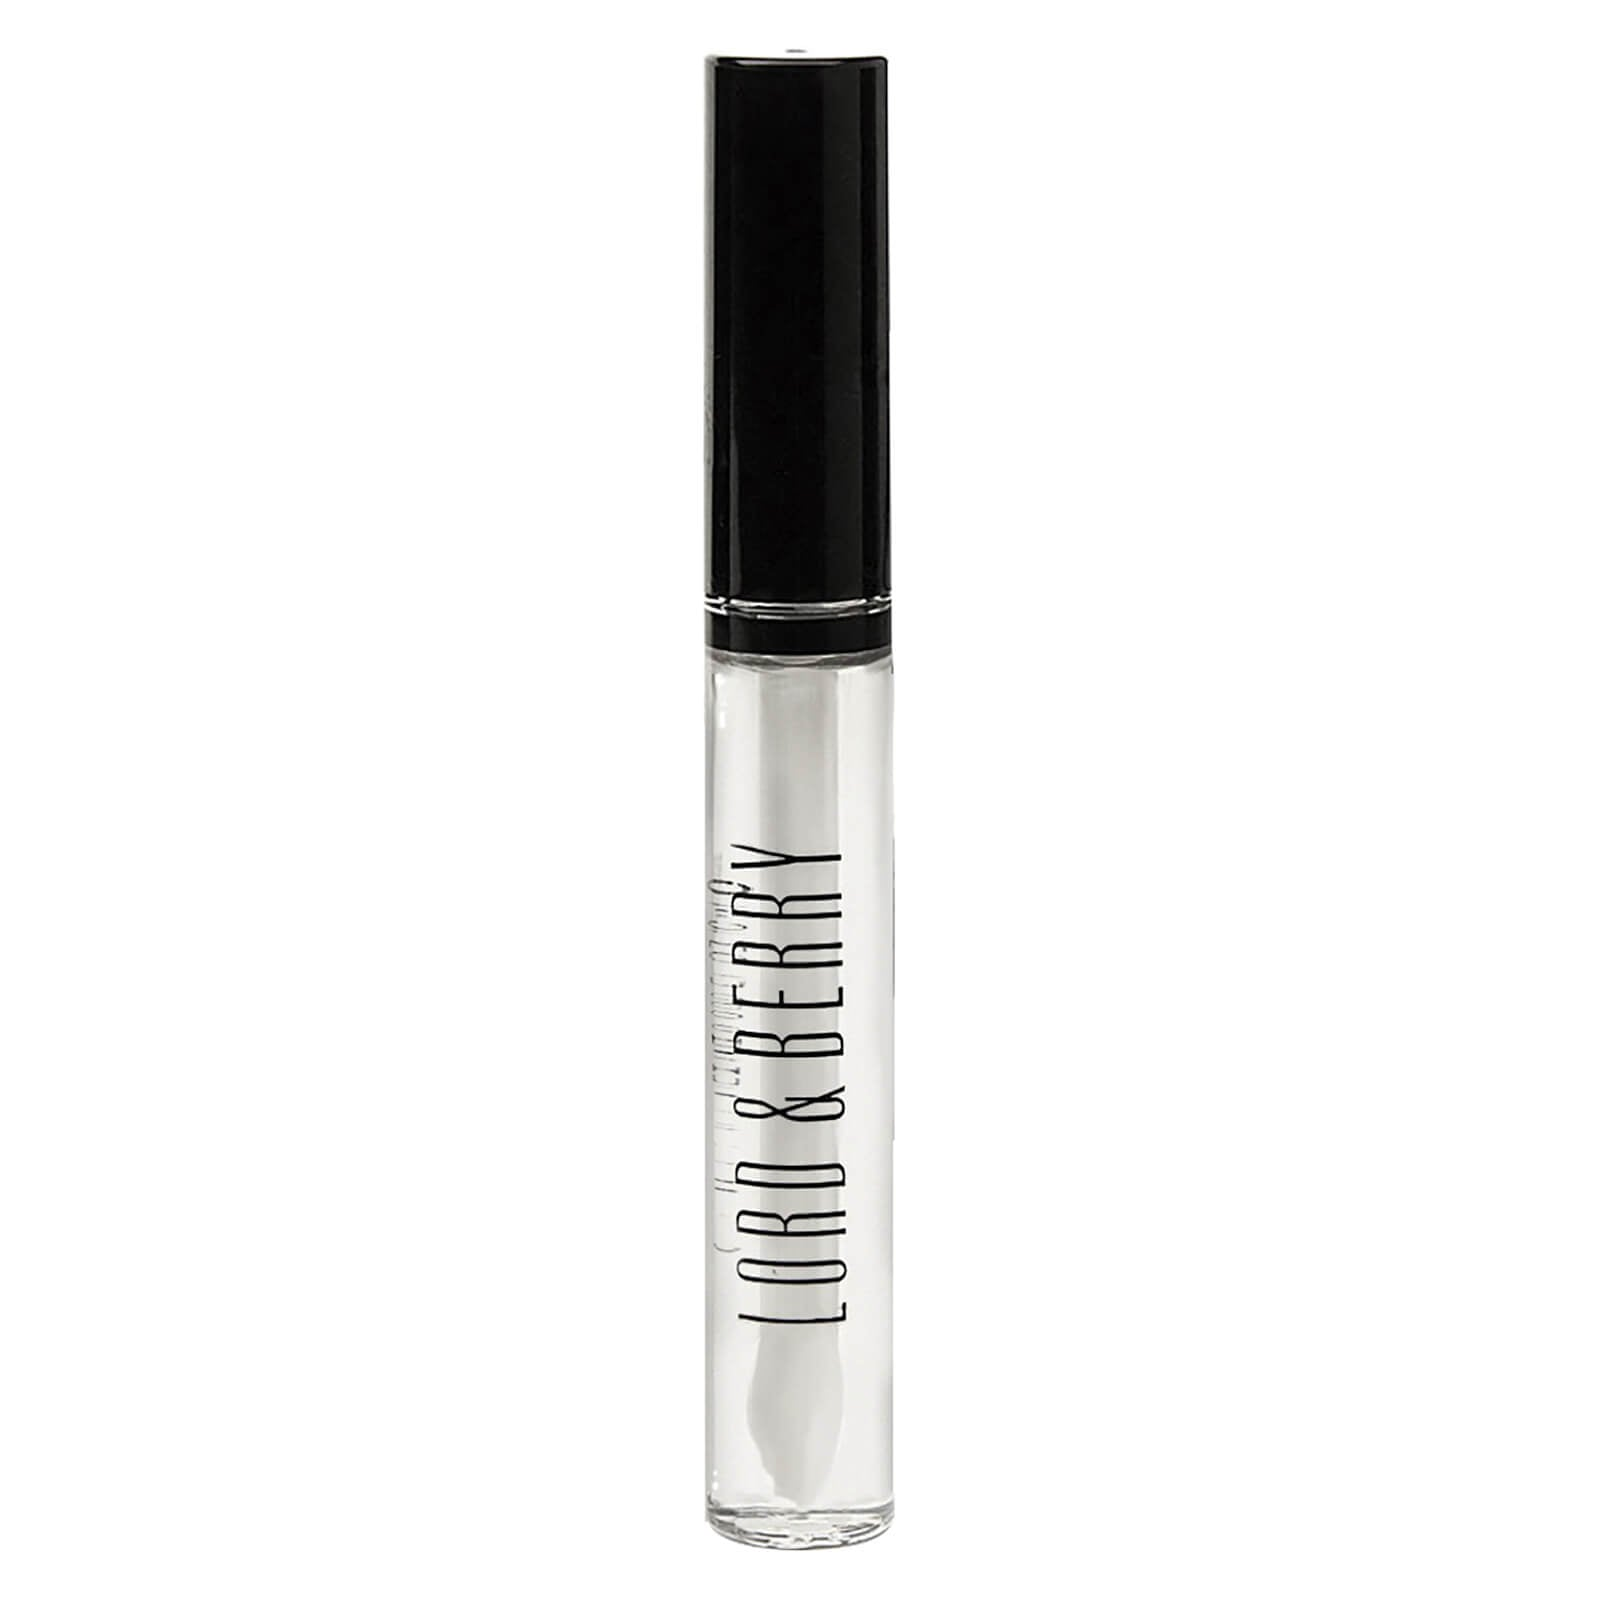 Lord & Berry Lip Oil Potion Treatment